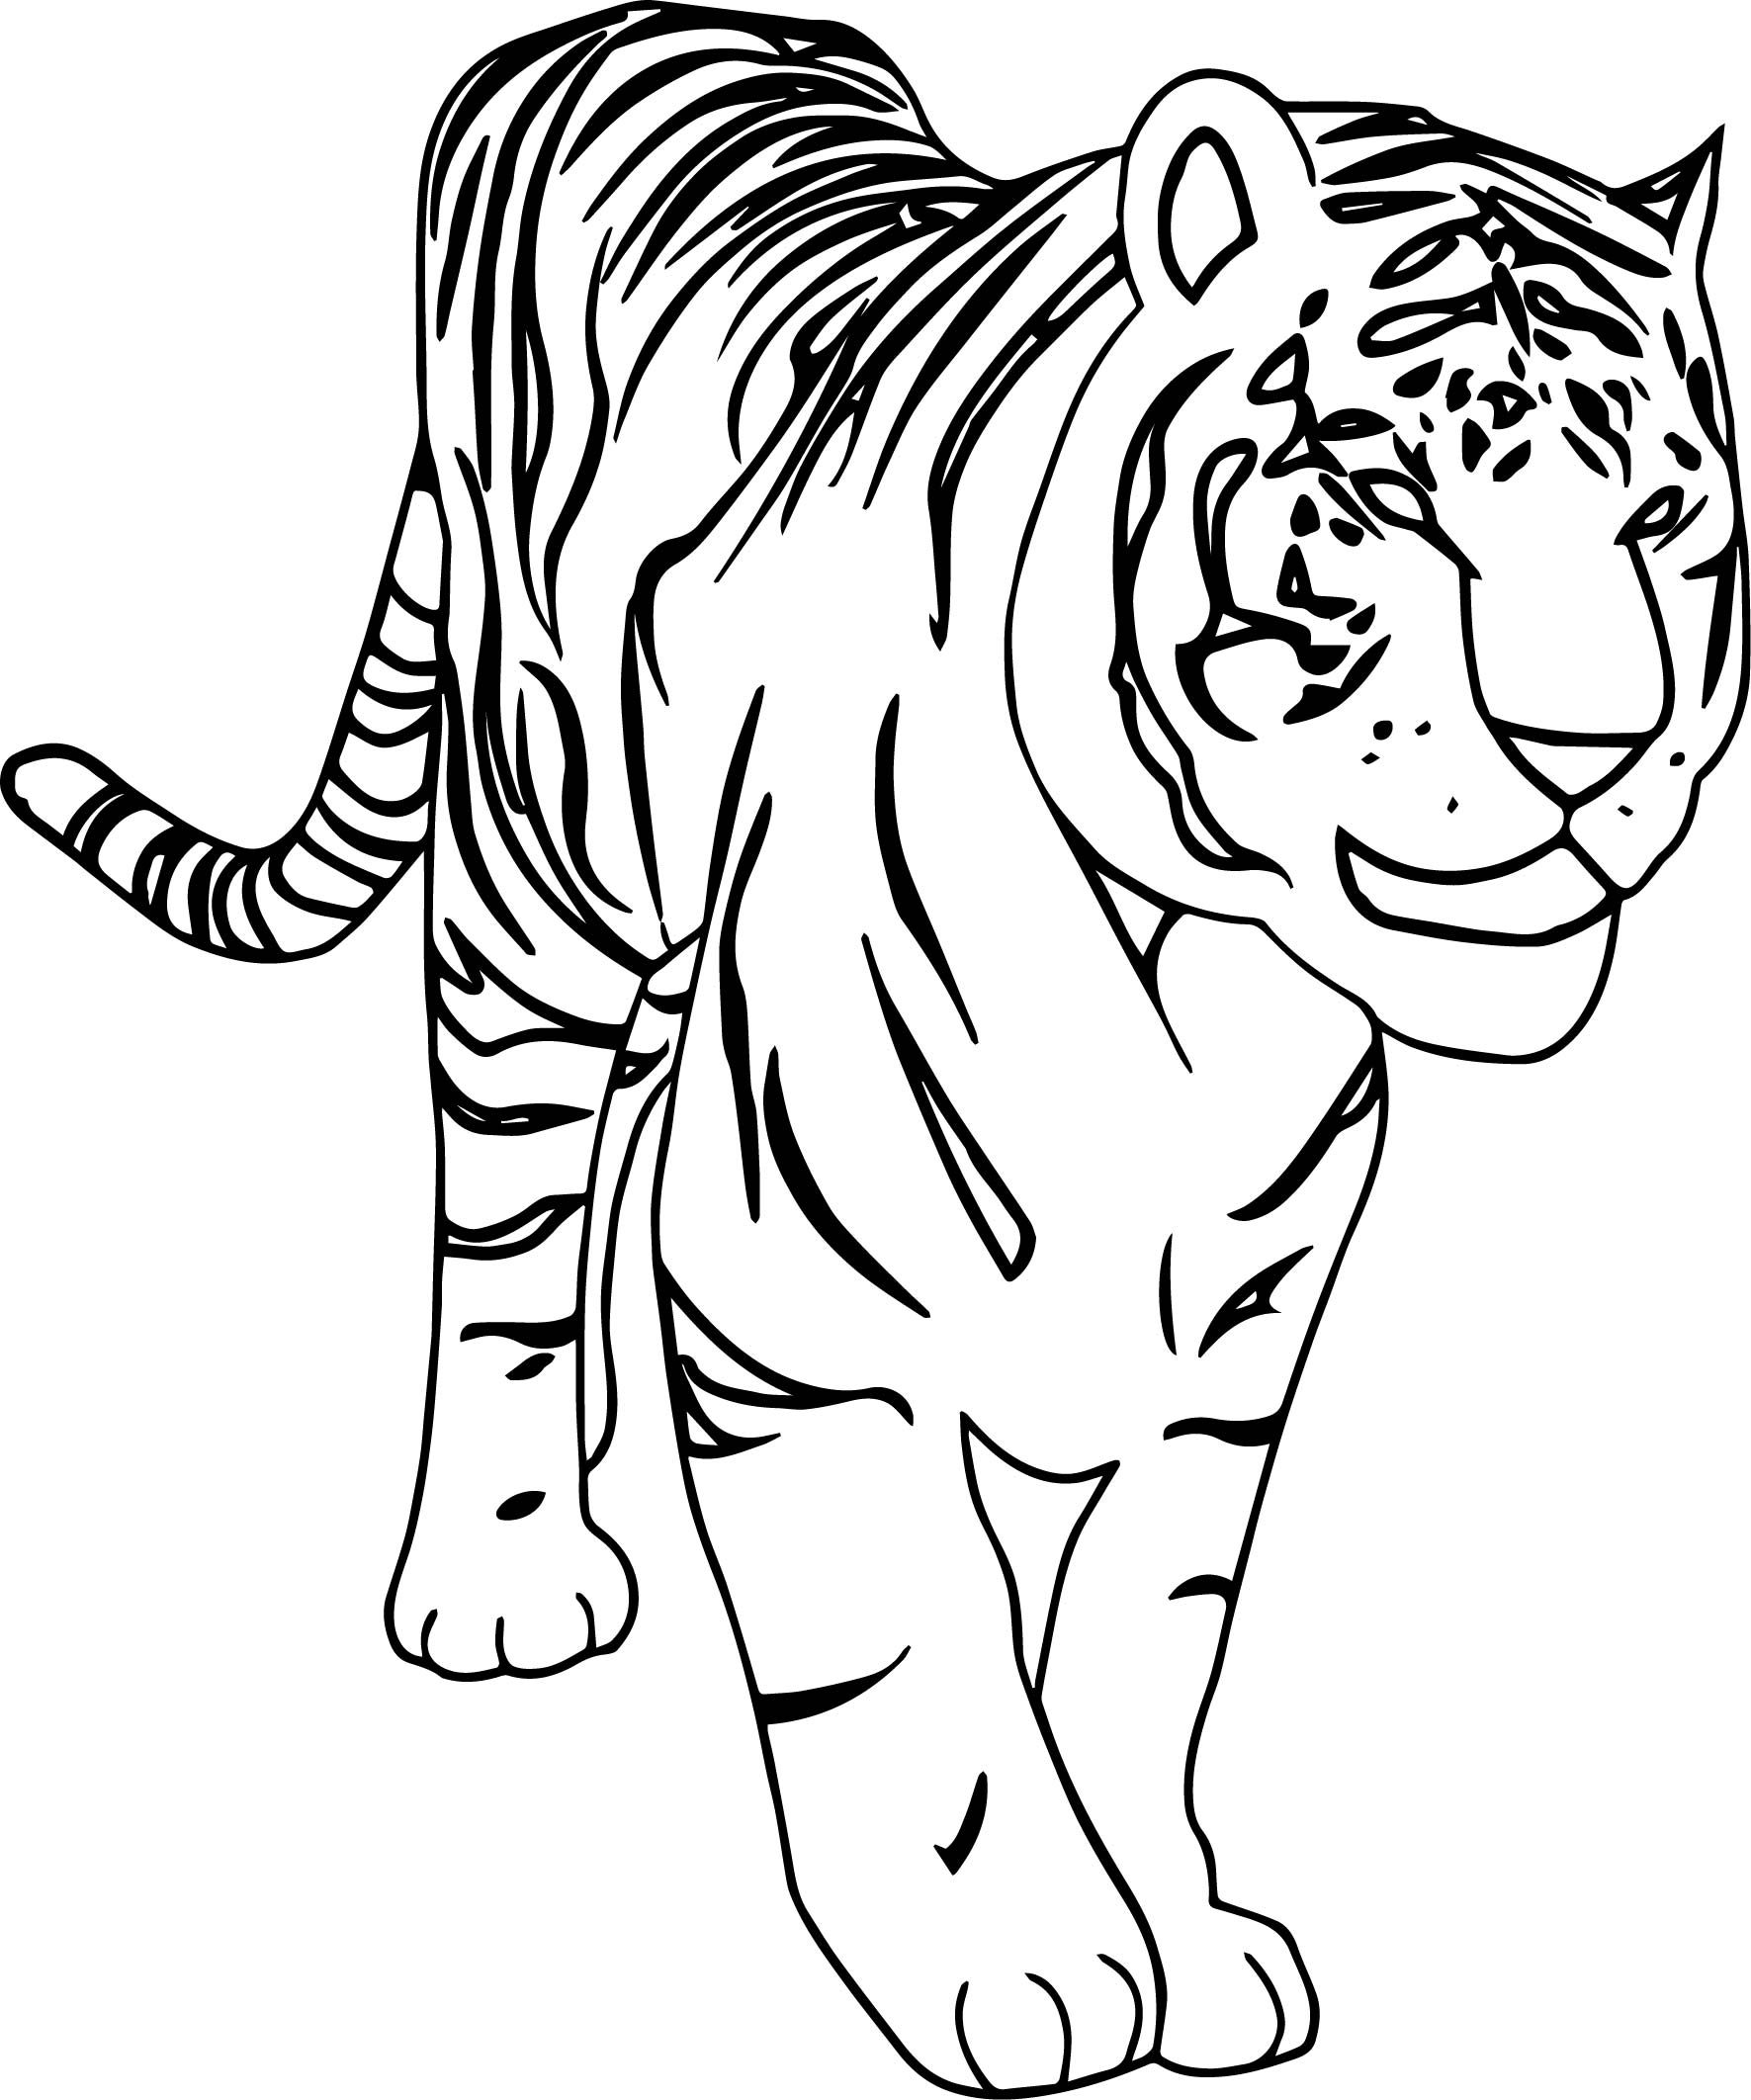 Walking Danger Tiger Coloring Page